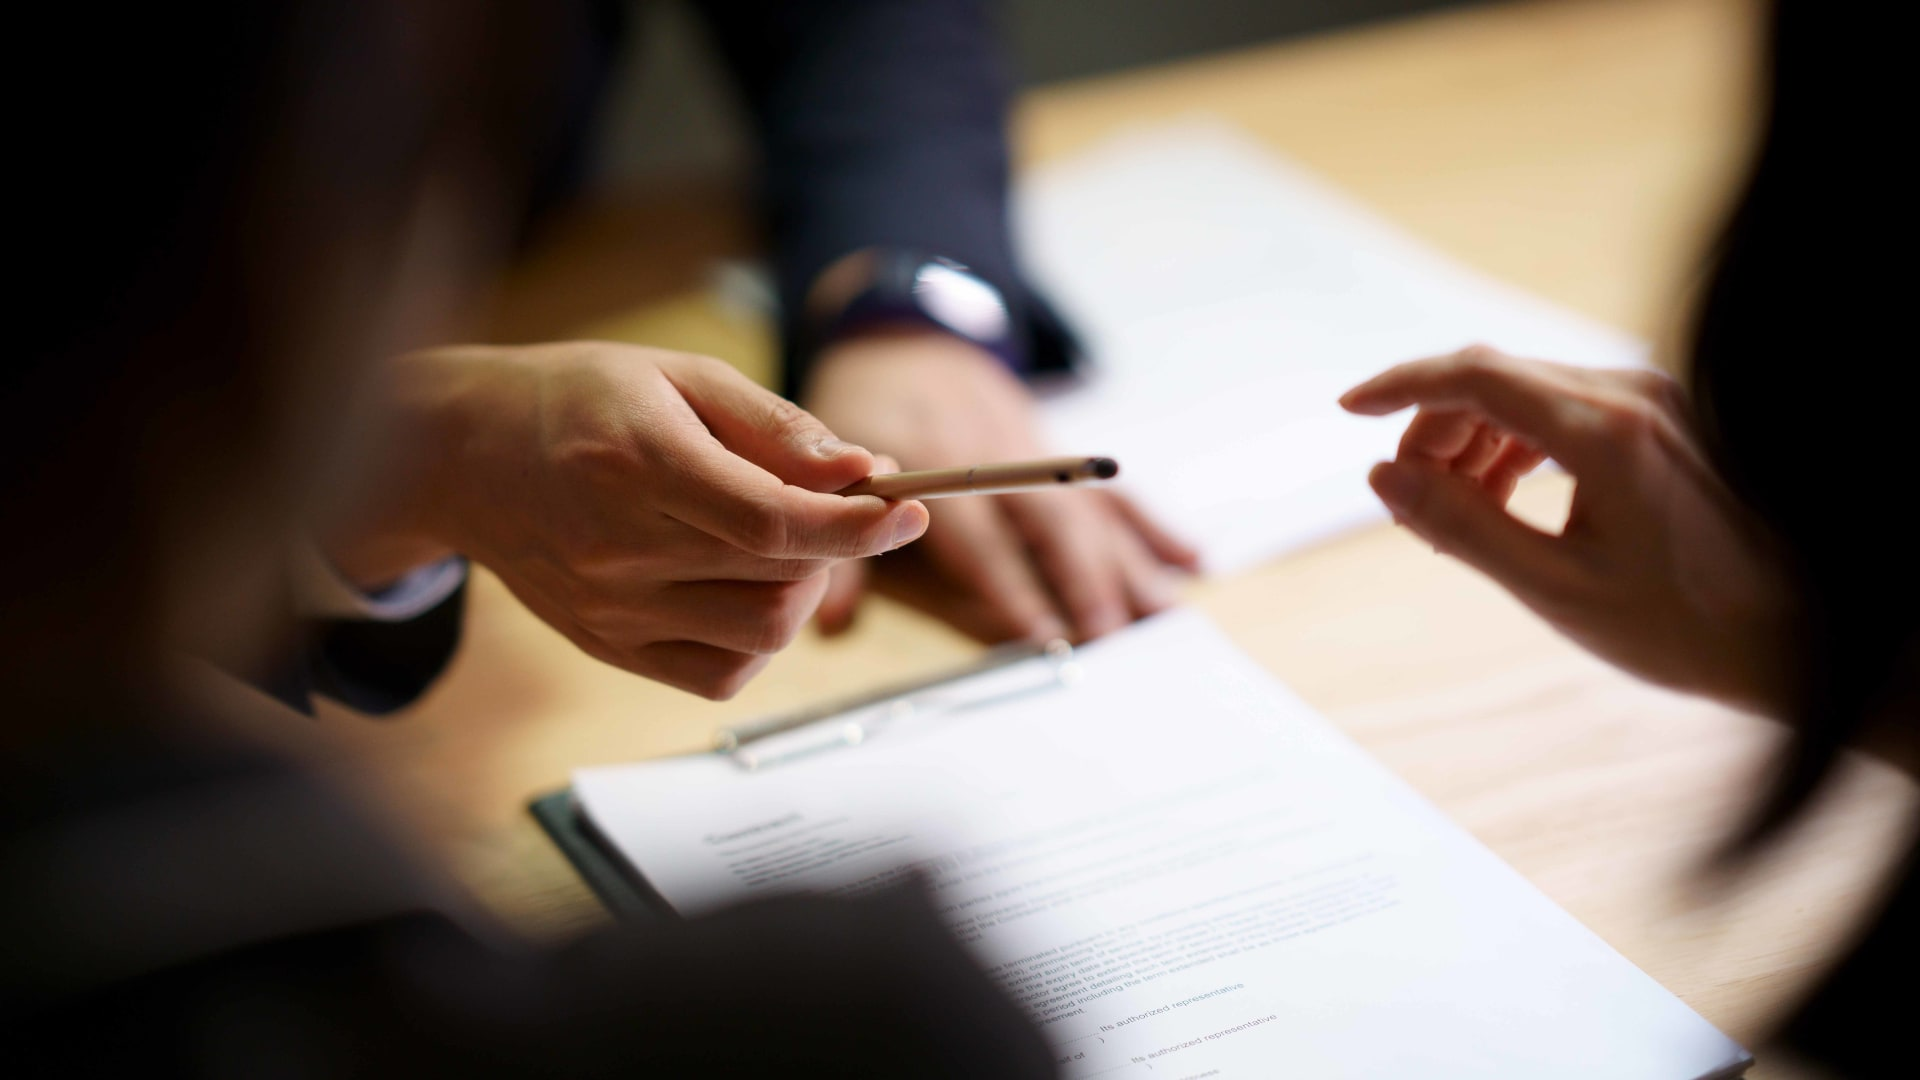 The 5 F's of Successful Negotiations, and Other Tips to Get the Most Out of Any Deal